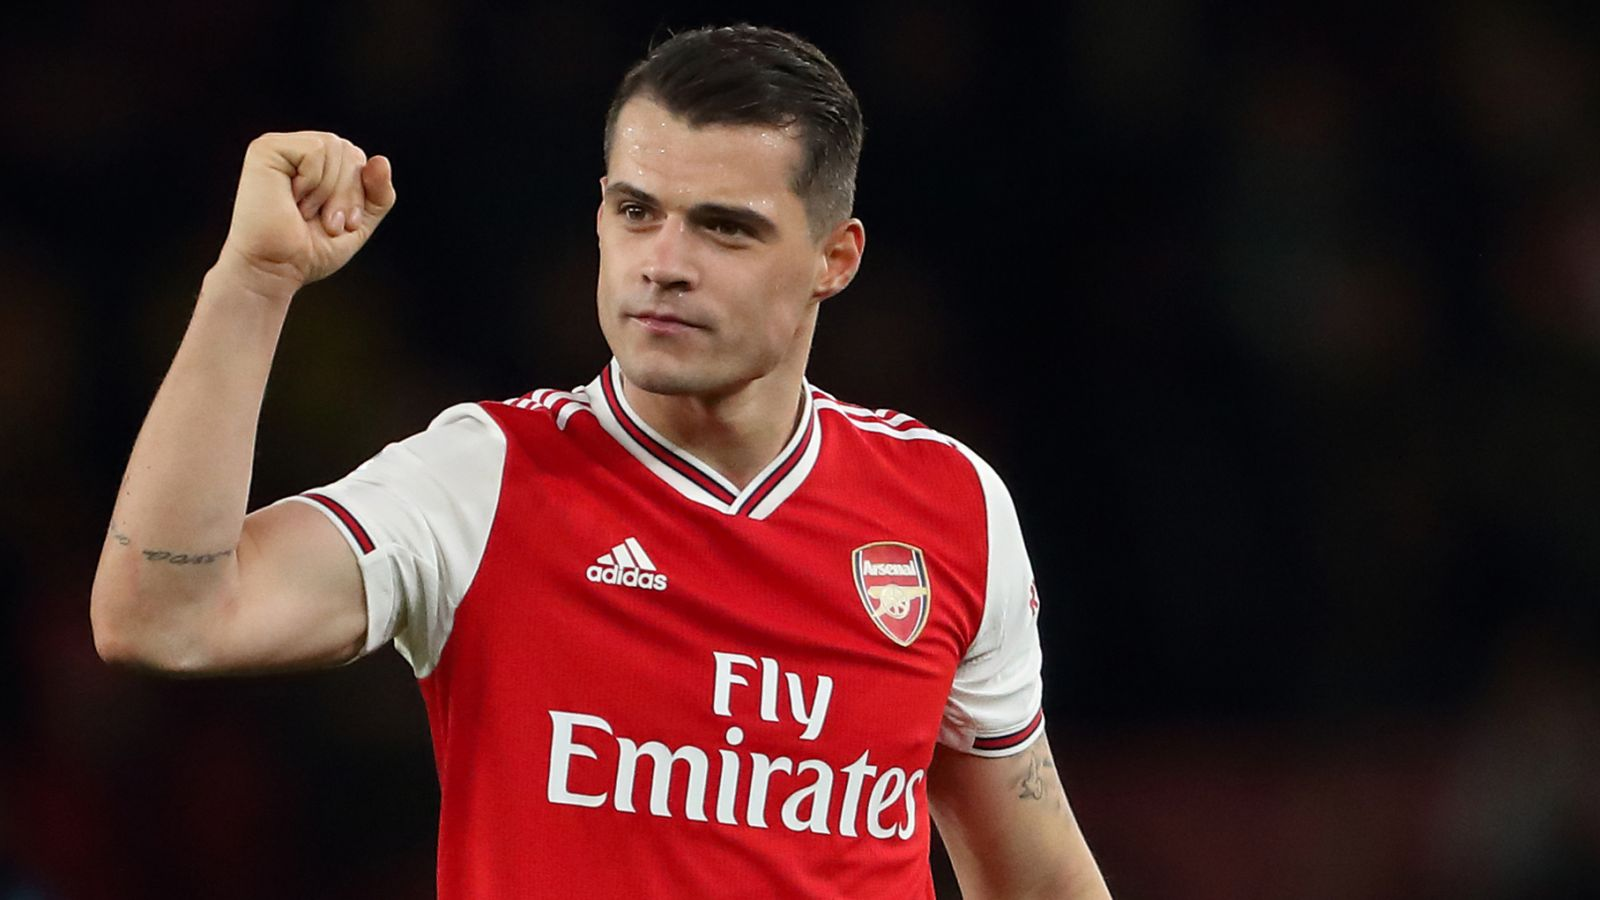 Arsenal's Grant Xhaka calls for more openness with fans